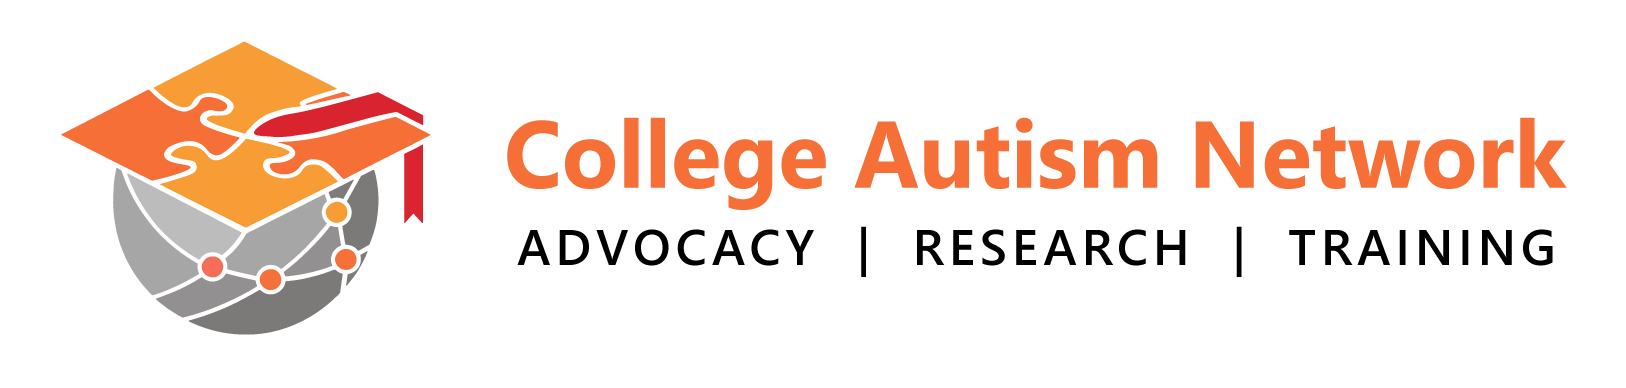 College Autism Network (CAN)